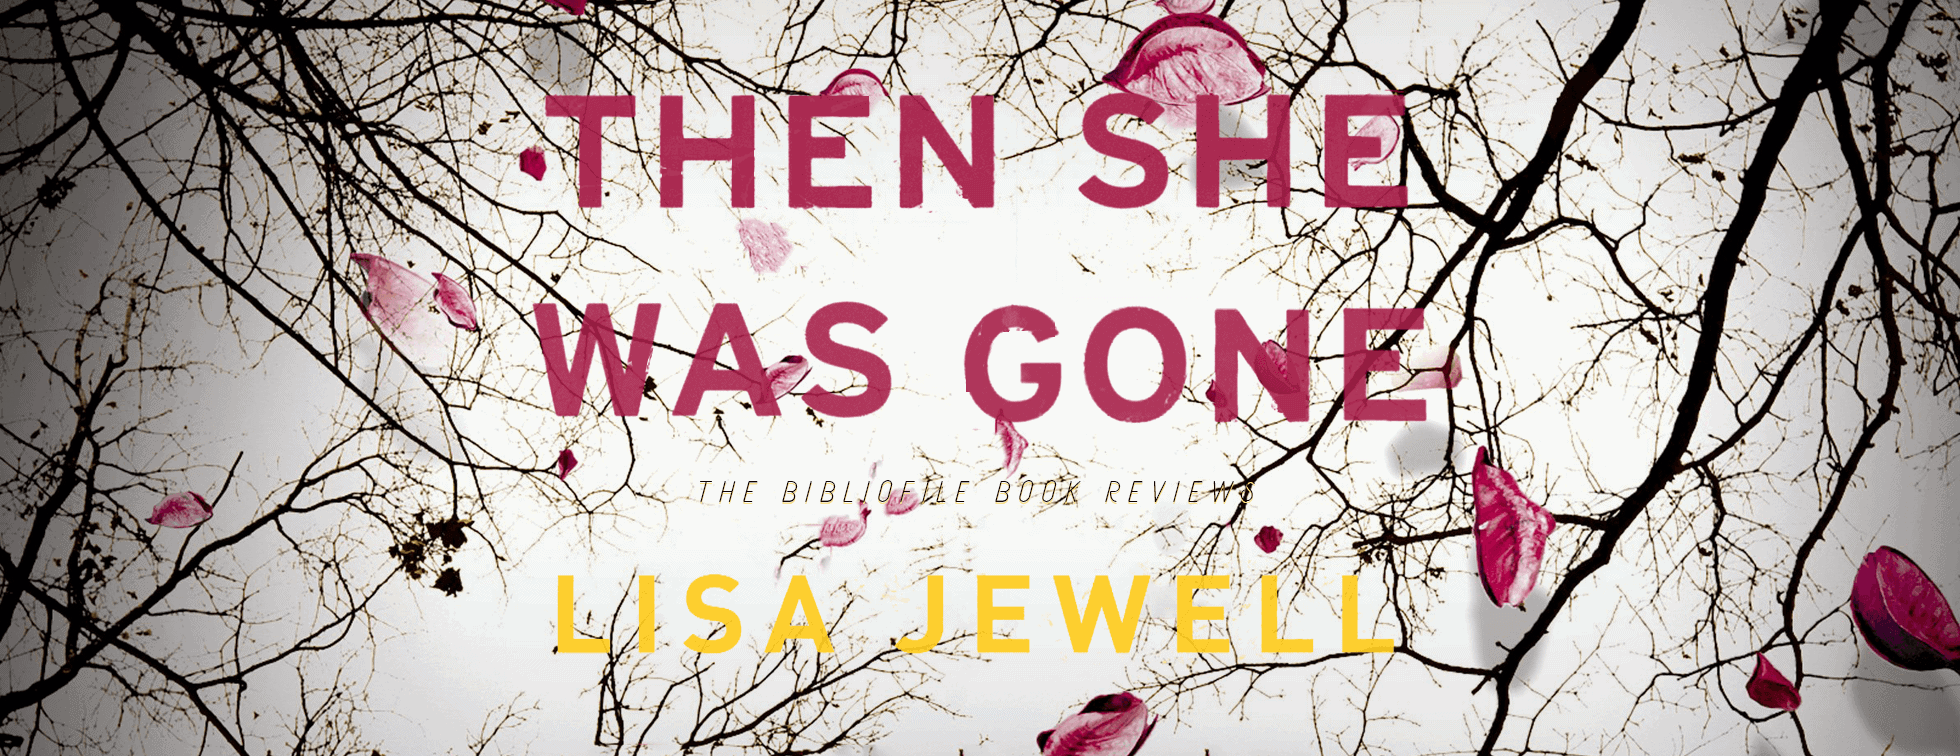 then she was gone by lisa jewel spoilers summary ending book review plot synopsis book review detailed summary